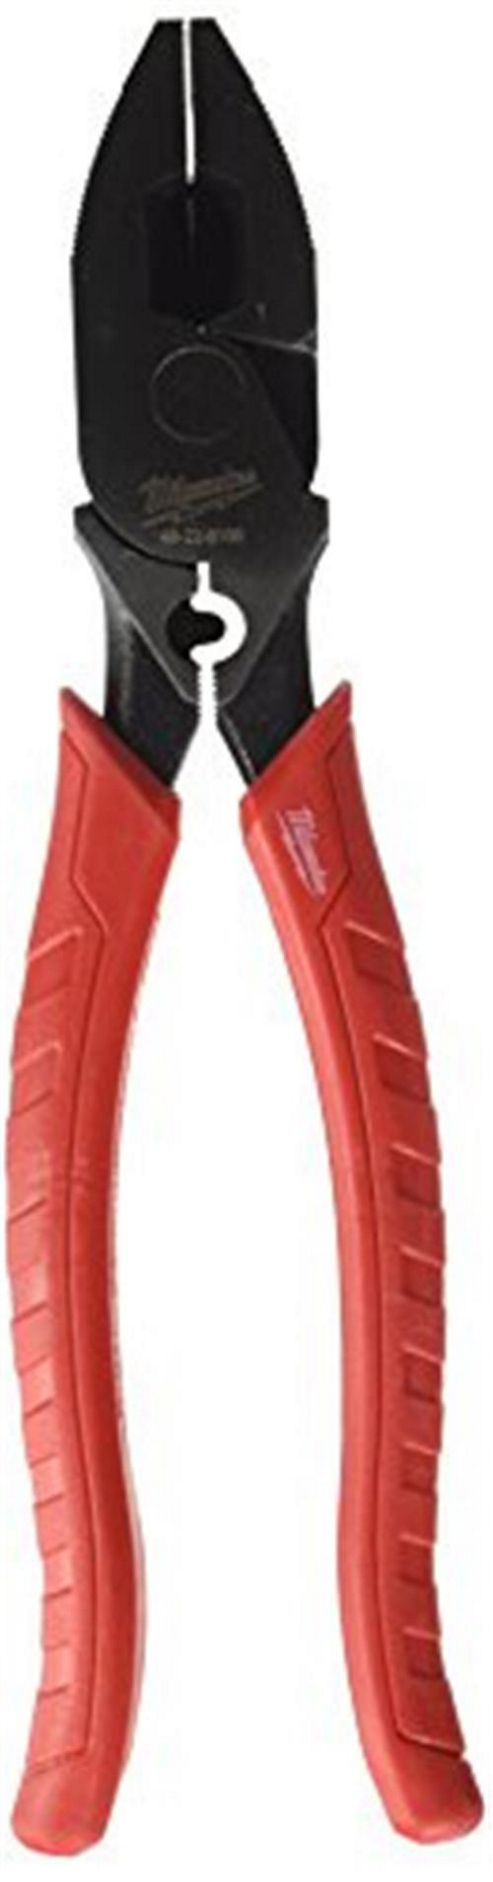 Milwaukee MIL48226100 Slip Joint Pliers